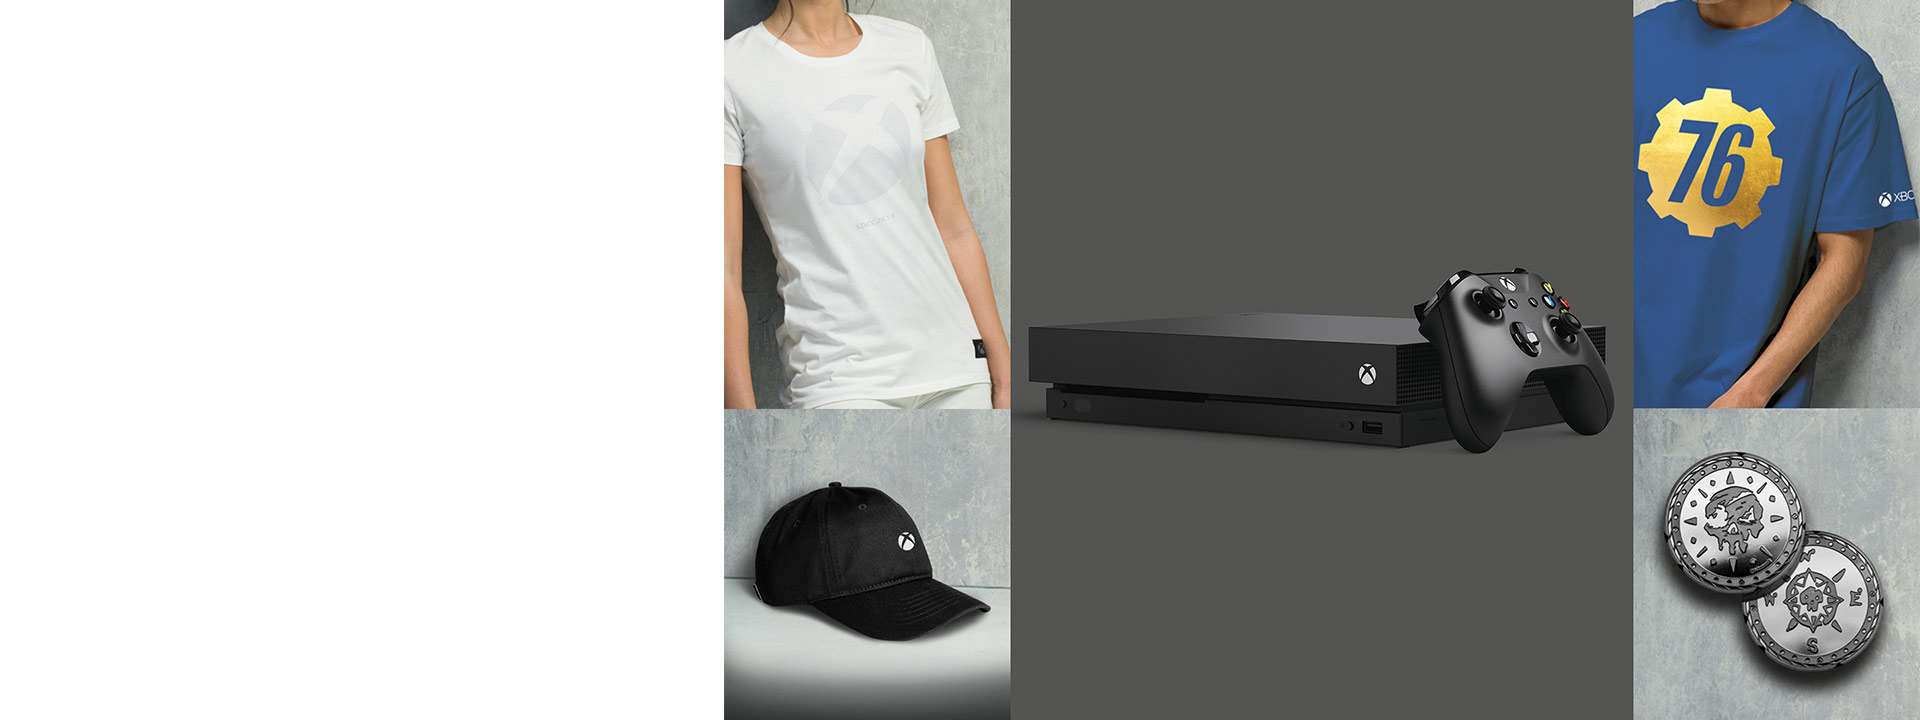 Xbox and Fallout shirts and an Xbox hat around an Xbox One X